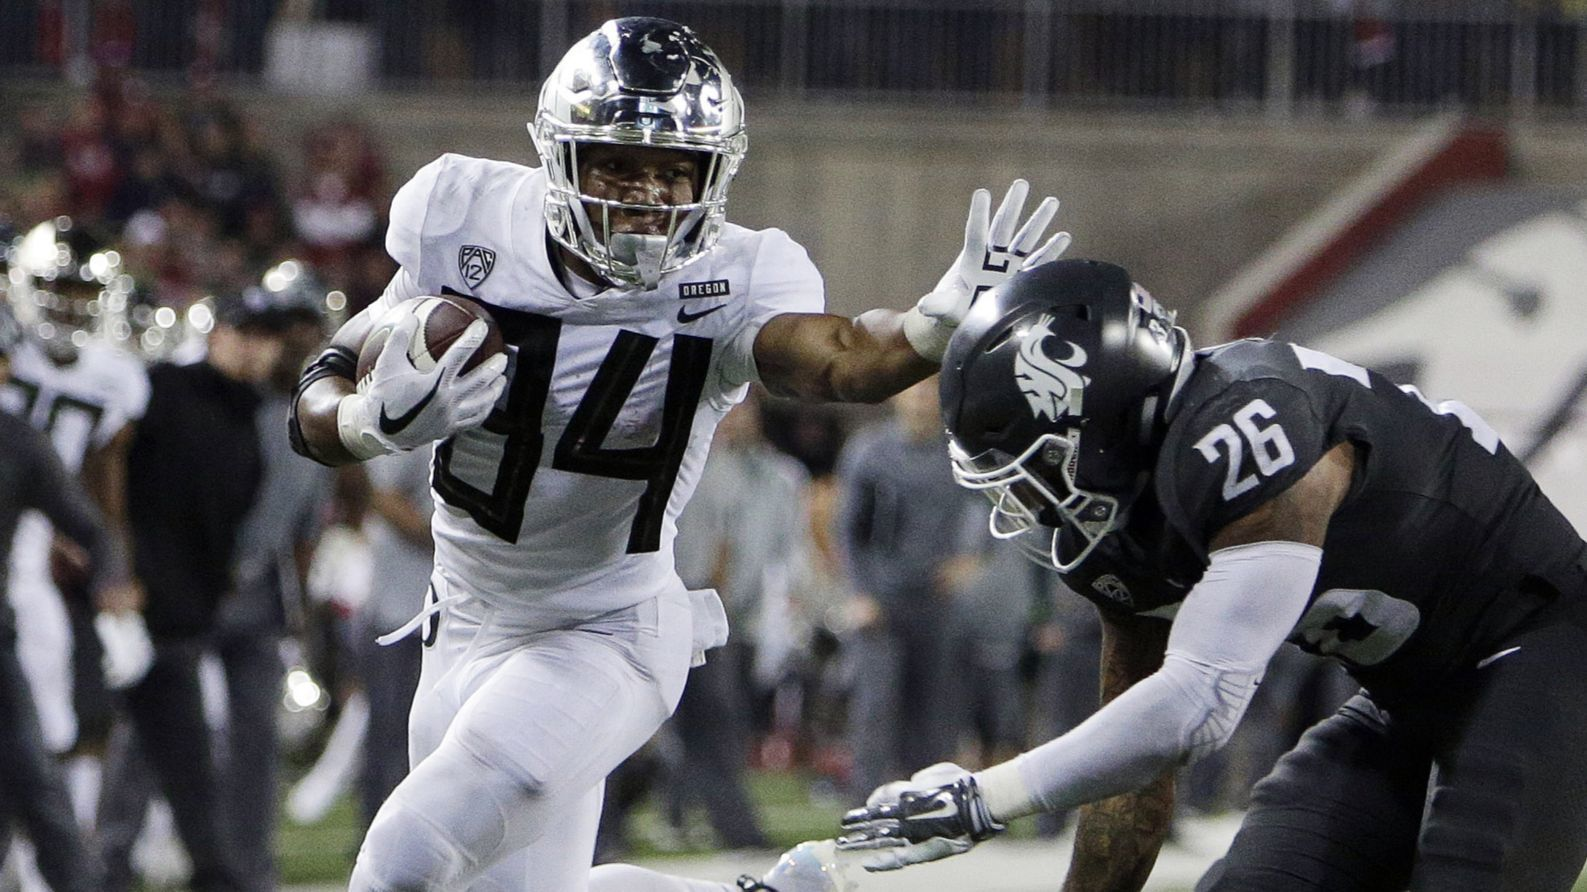 Holiday Bowl watch: At this point, look for an Iowa-Oregon matchup